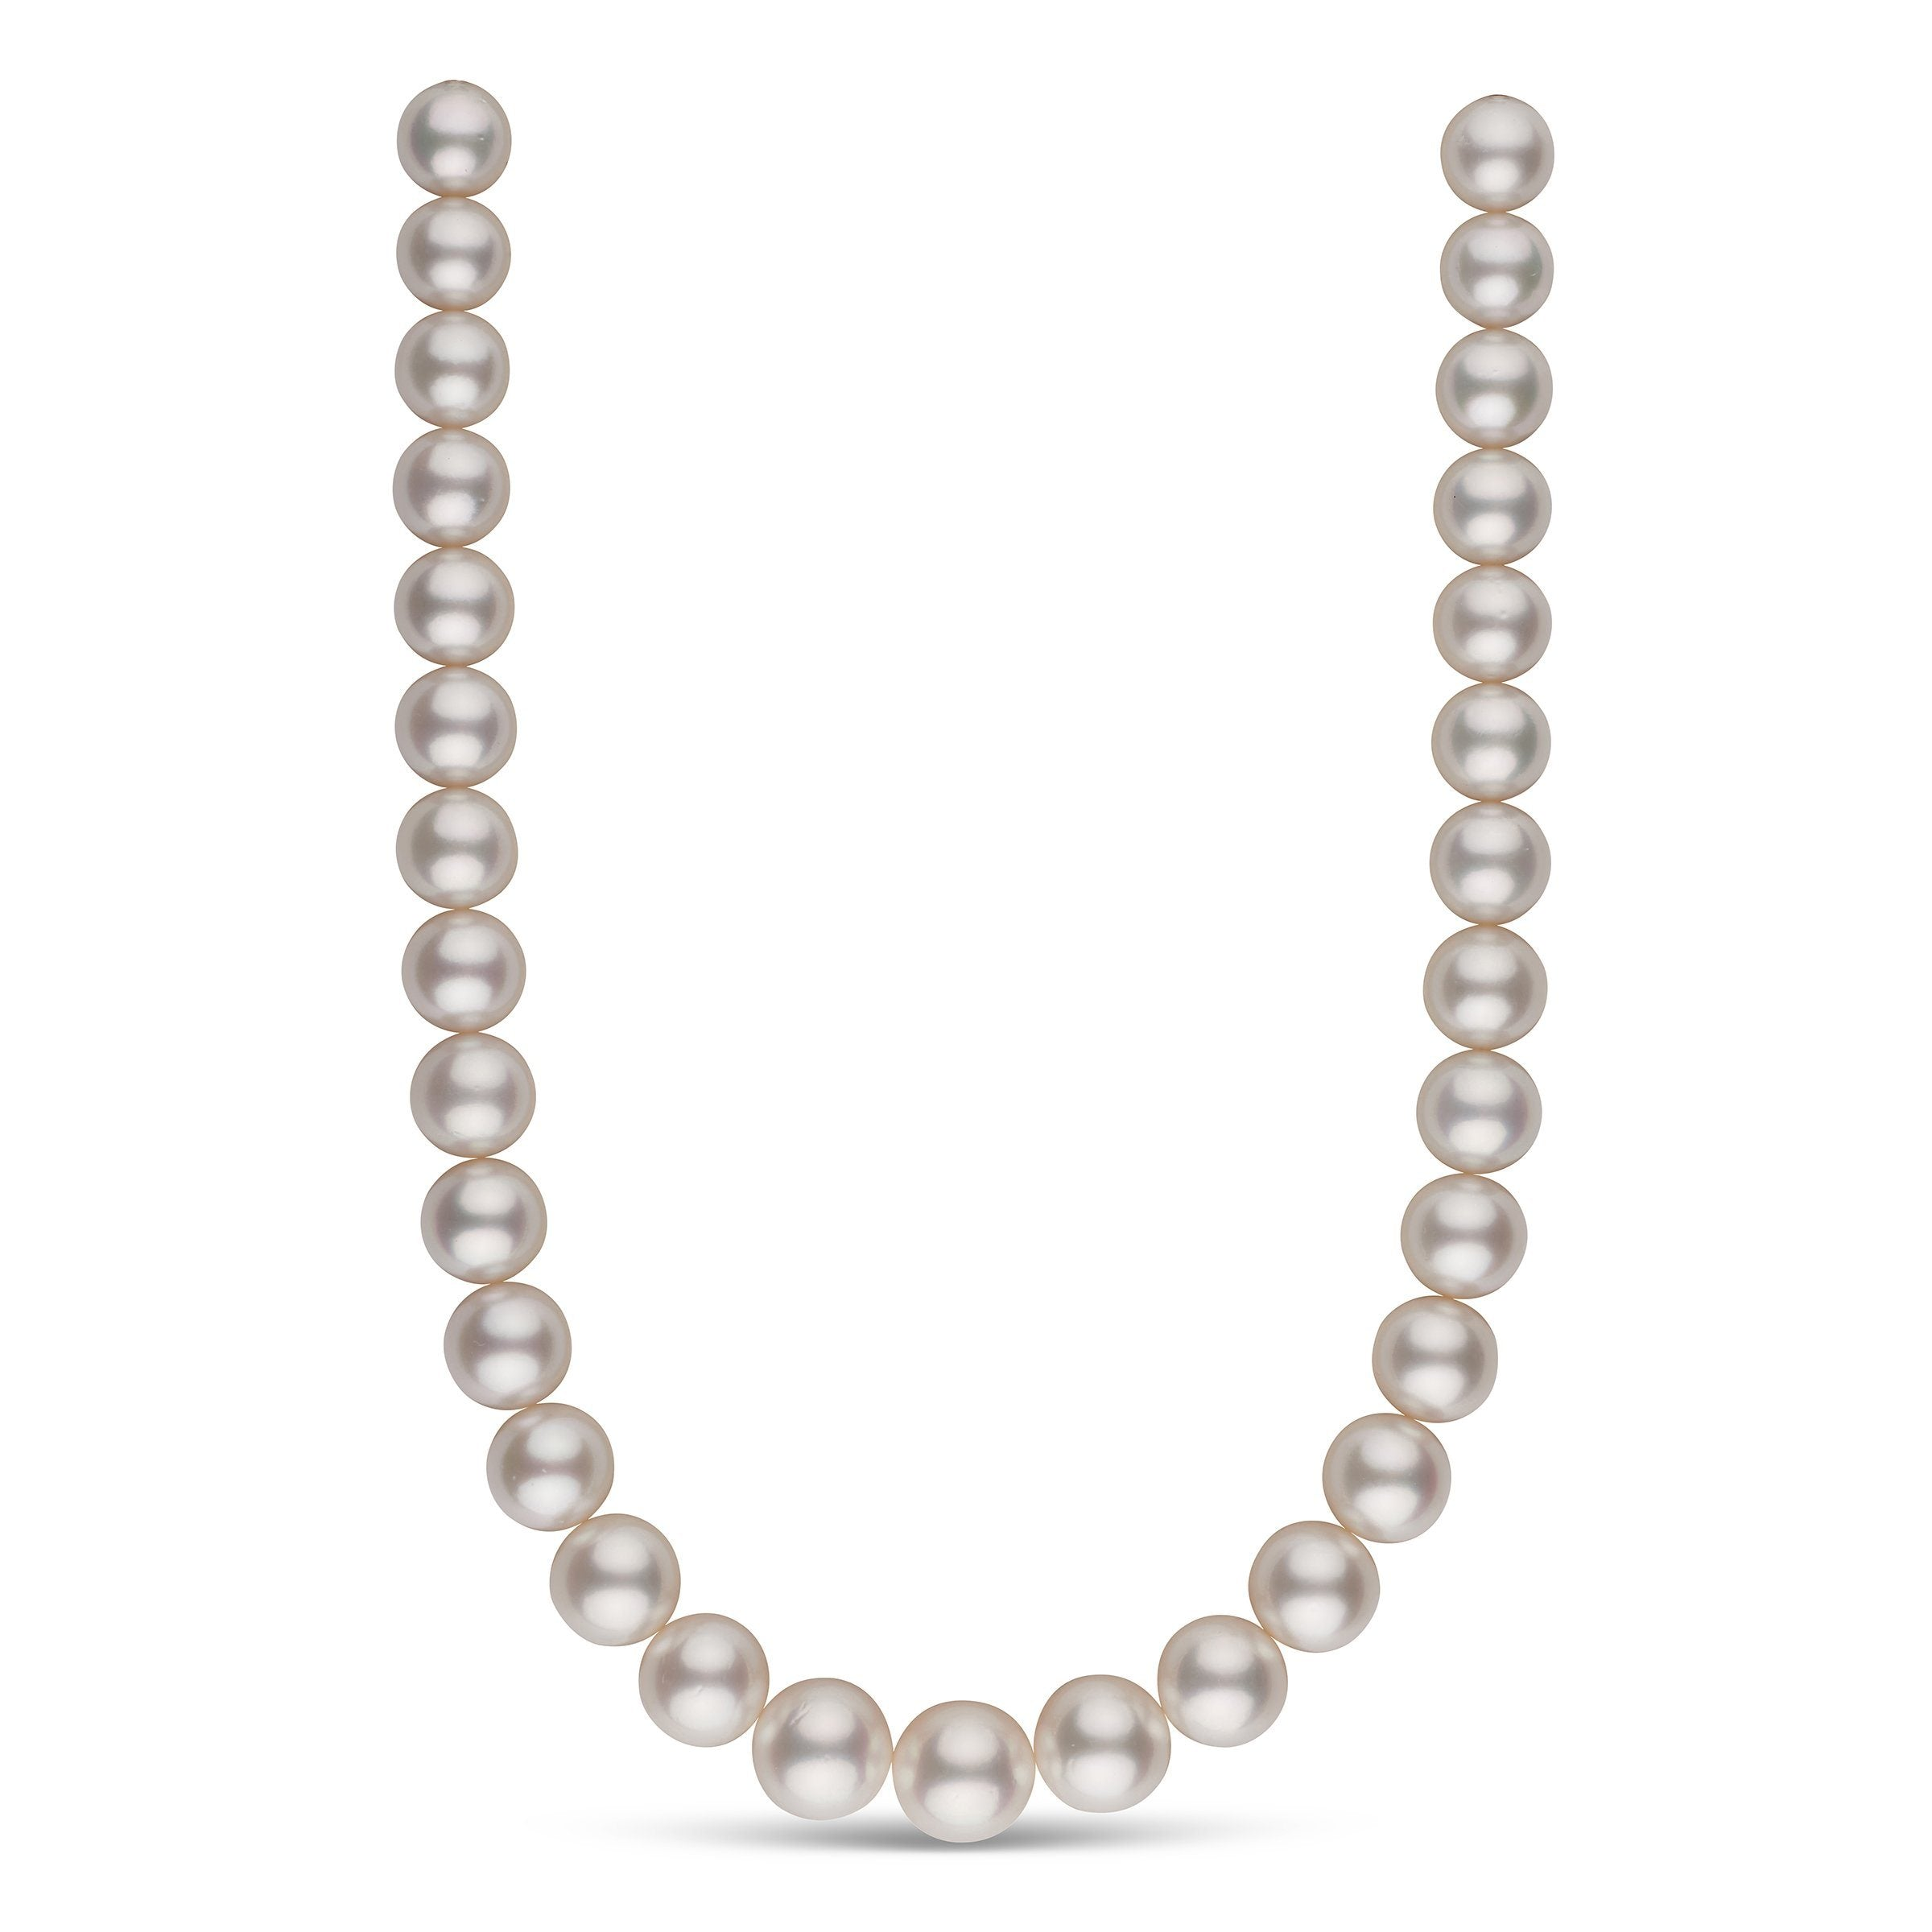 13.0-16.0 mm AA+/AAA White South Sea Round Pearl Necklace